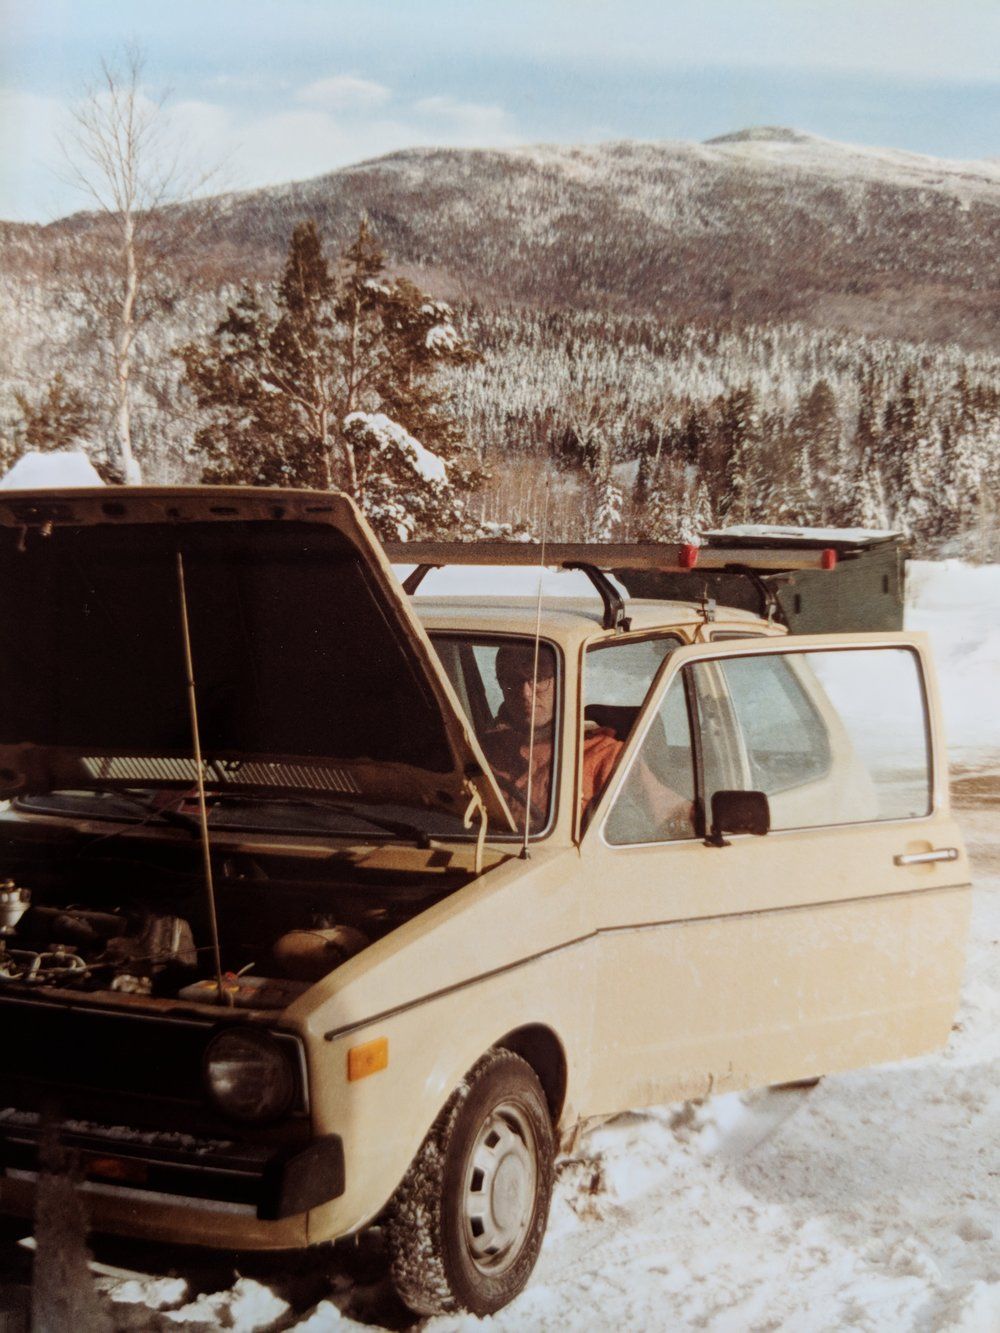 My 1979 VW Rabbit, refusing to run in cold weather.